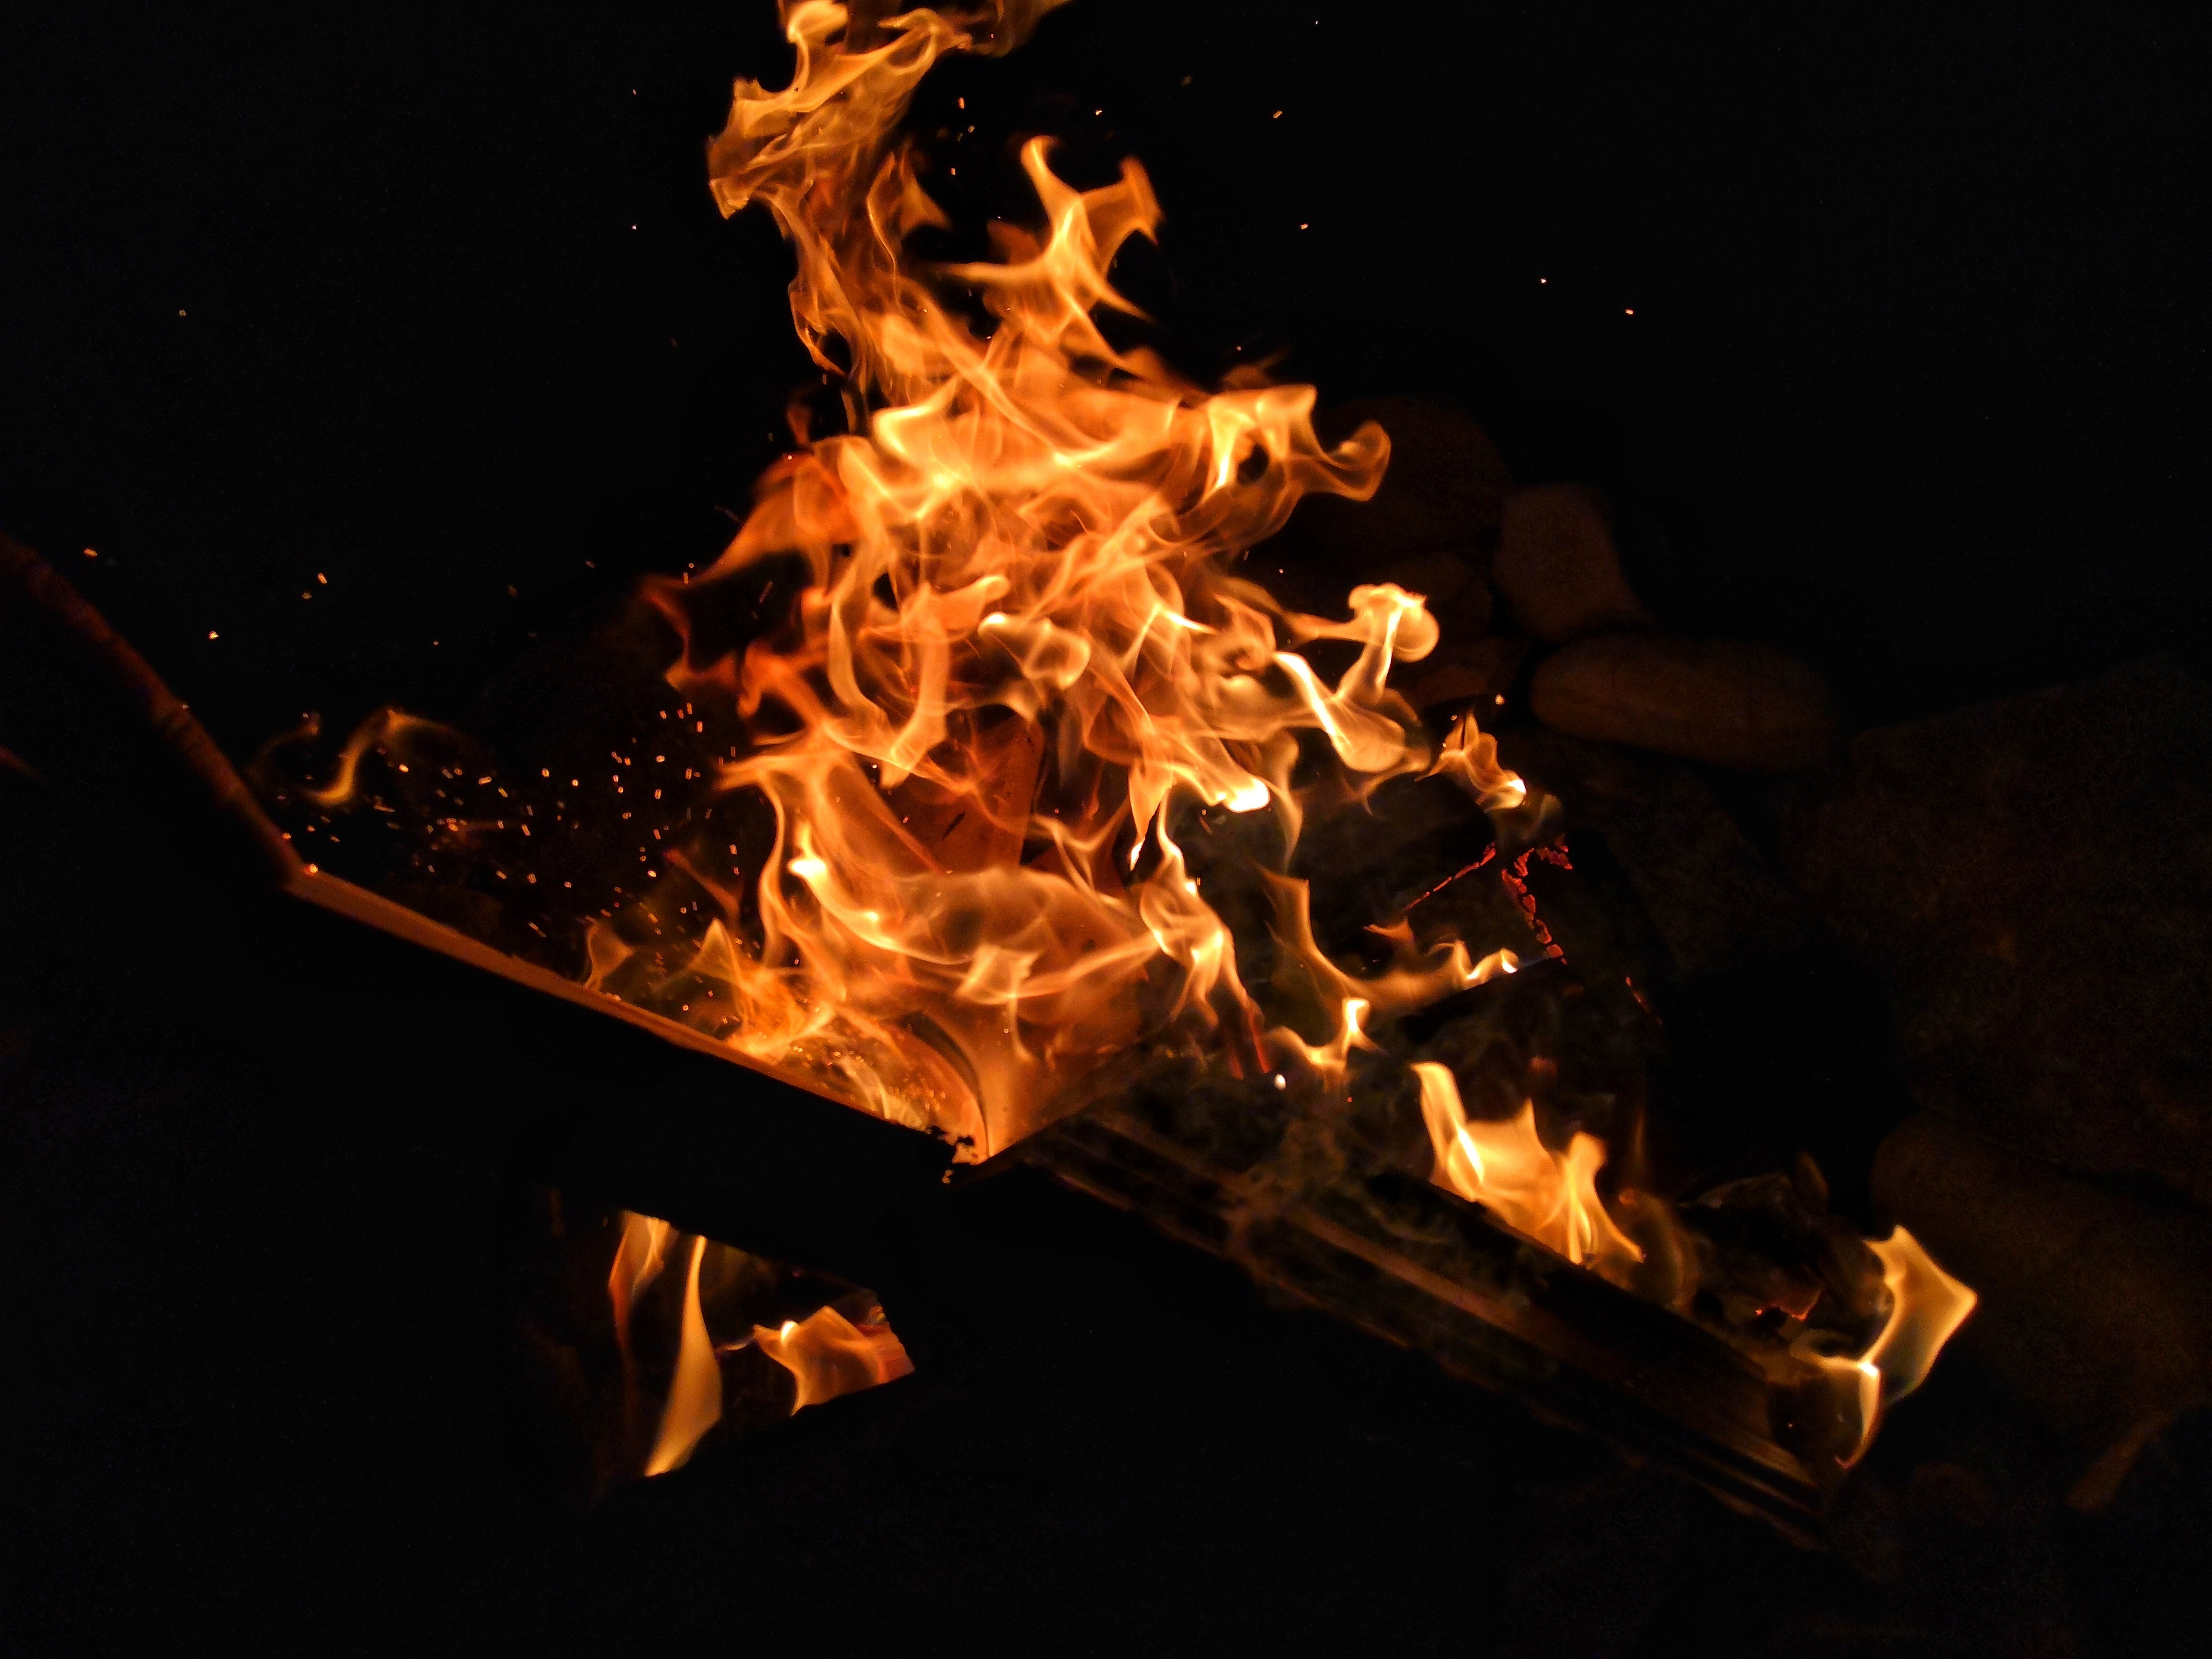 Free stock photo of burning, camping, fire, flames